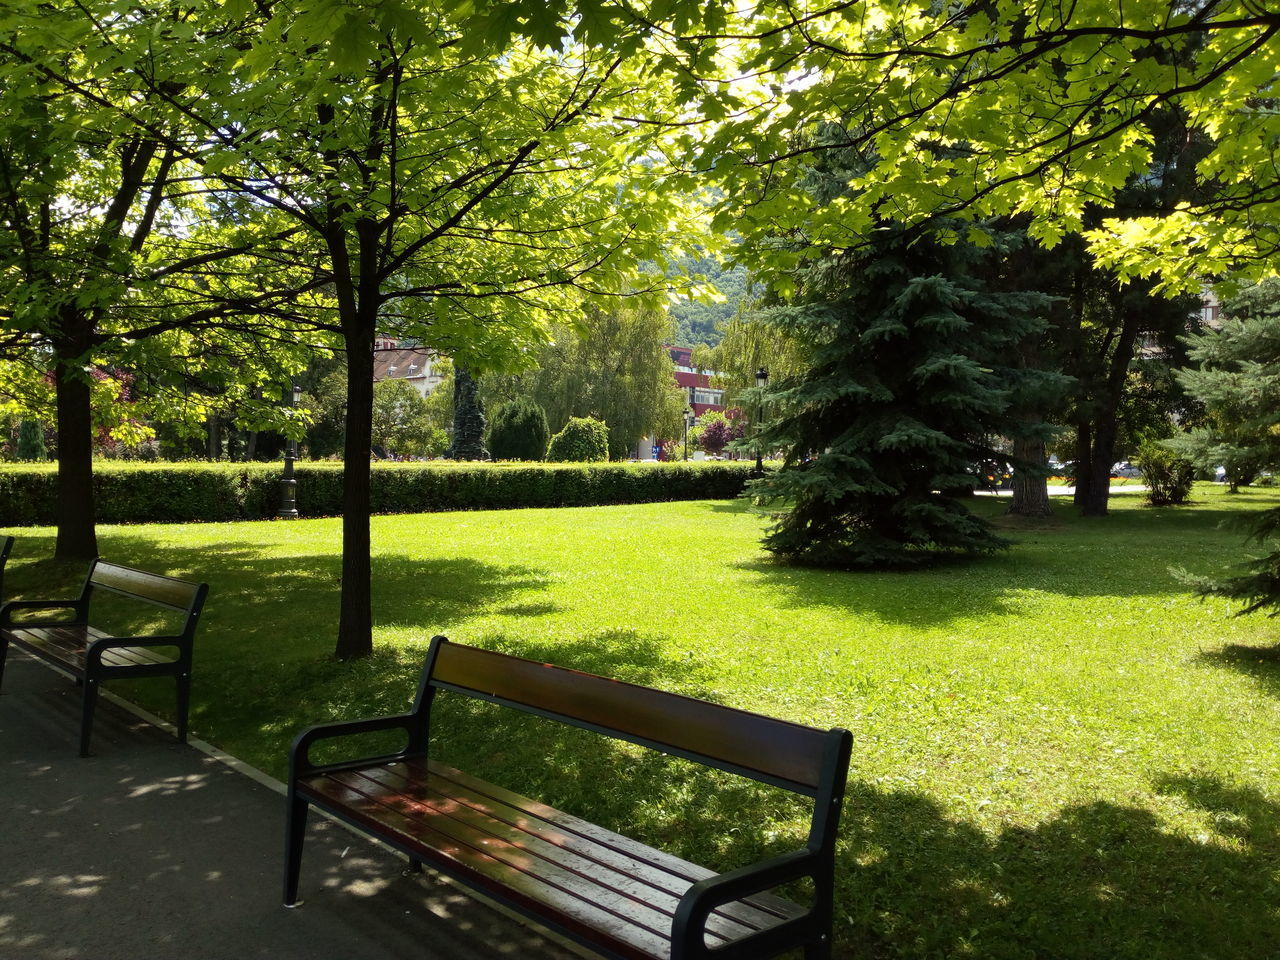 tree, grass, tranquility, nature, park - man made space, growth, no people, outdoors, day, landscape, beauty in nature, scenery